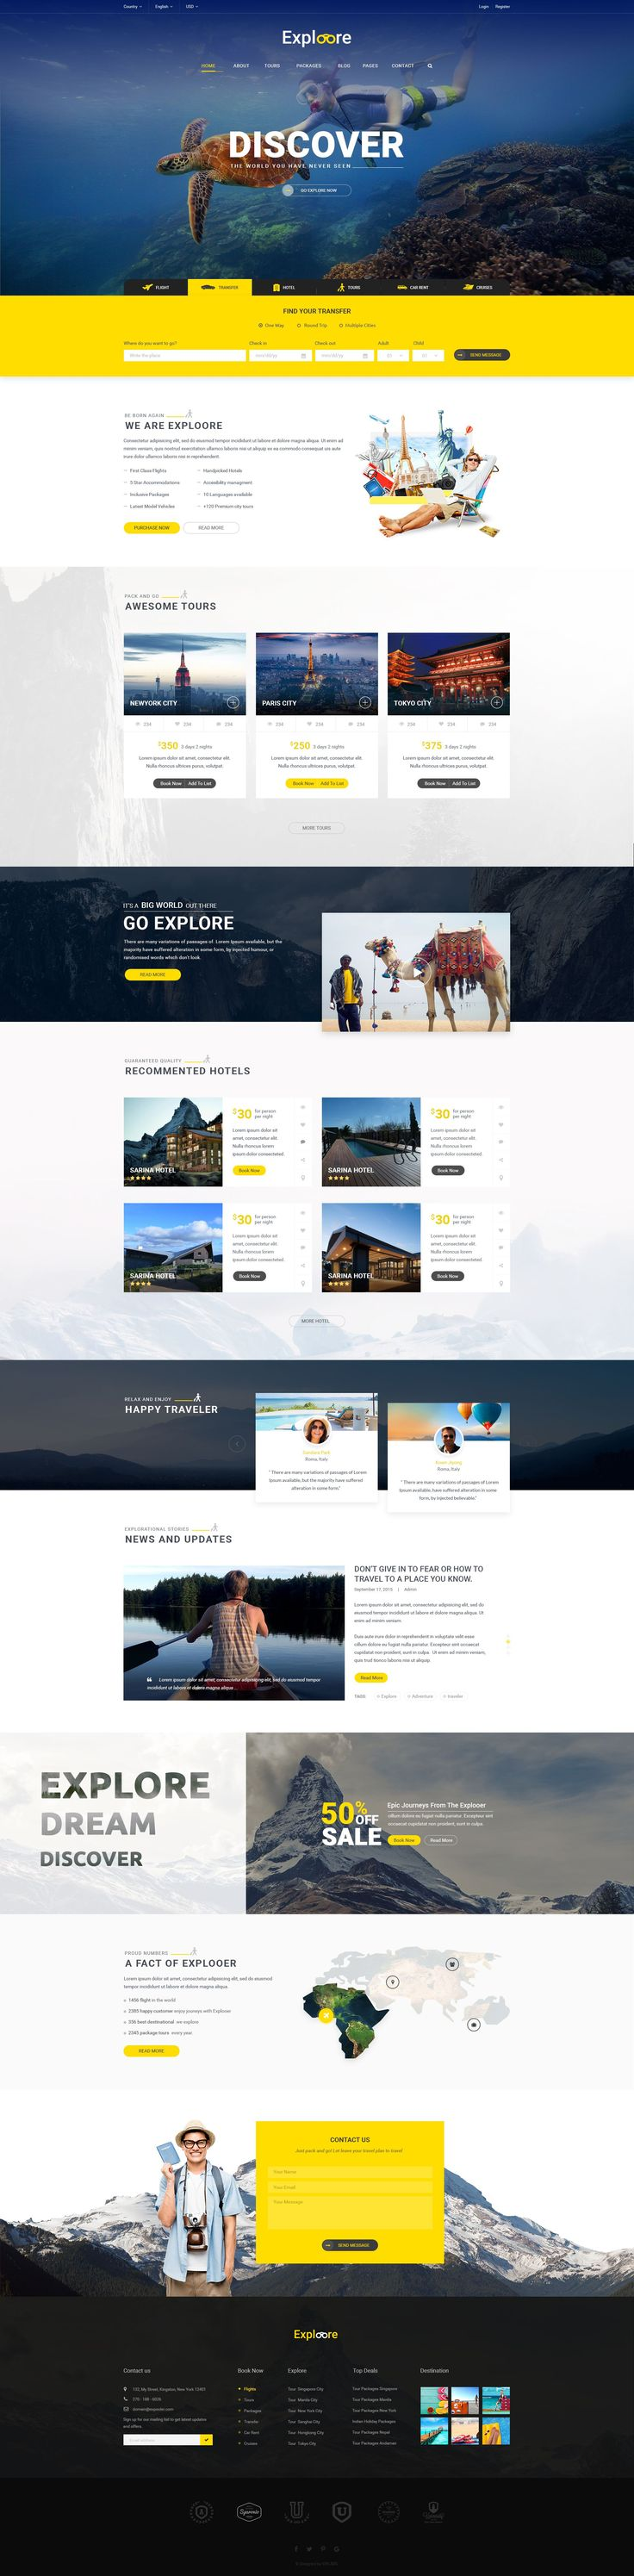 Exploore is modern PSD template has been designed for #travel #website, travel…